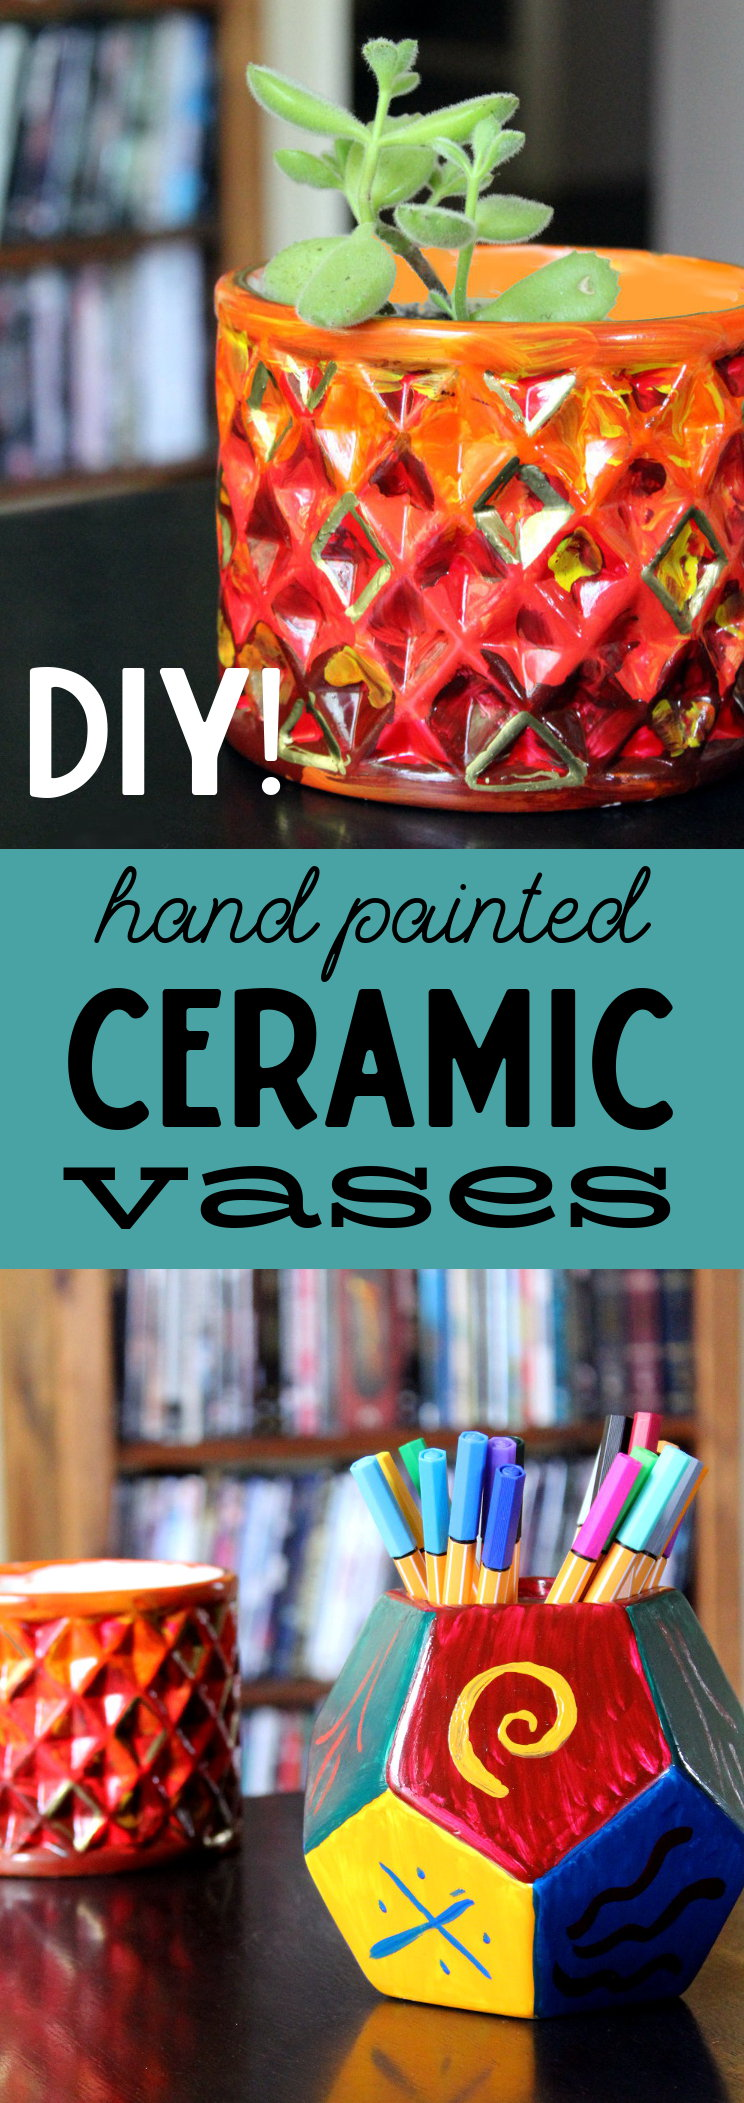 Unique hand painted ceramic vases for Mother's Day! Learn how to craft these hand painted ceramic vases for a one of a kind Mother's Day gift! These hand painted ceramic vases are incredibly easy to decorate. Simply paint, cure and bake and you have a unique handmade Mother's Day gift she'll always treasure!